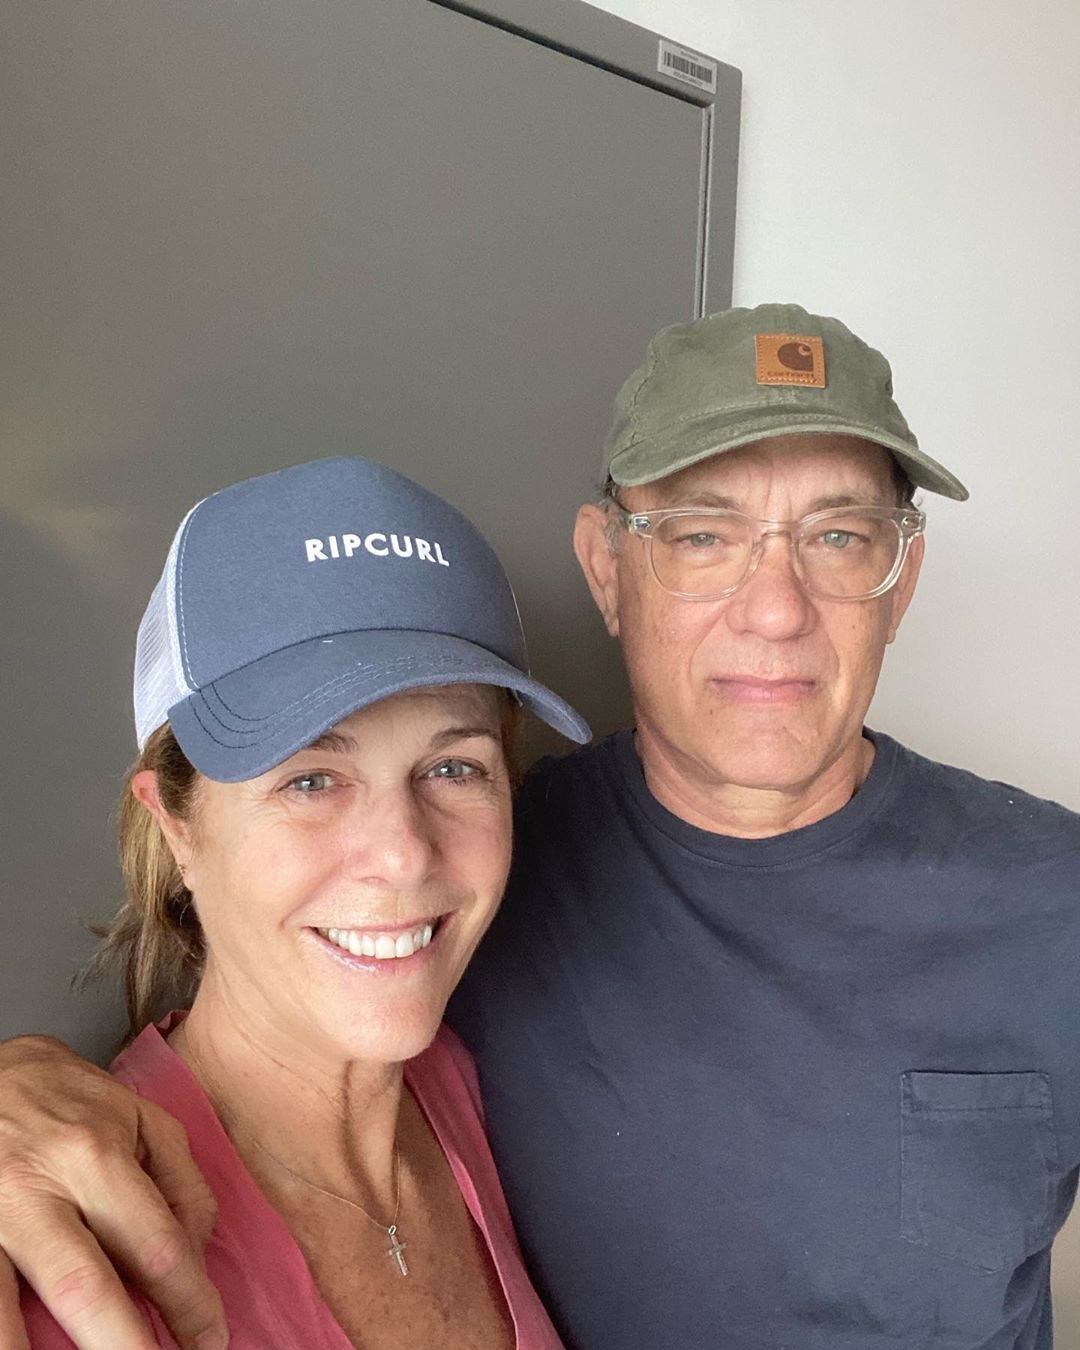 Tom Hanks and his wife